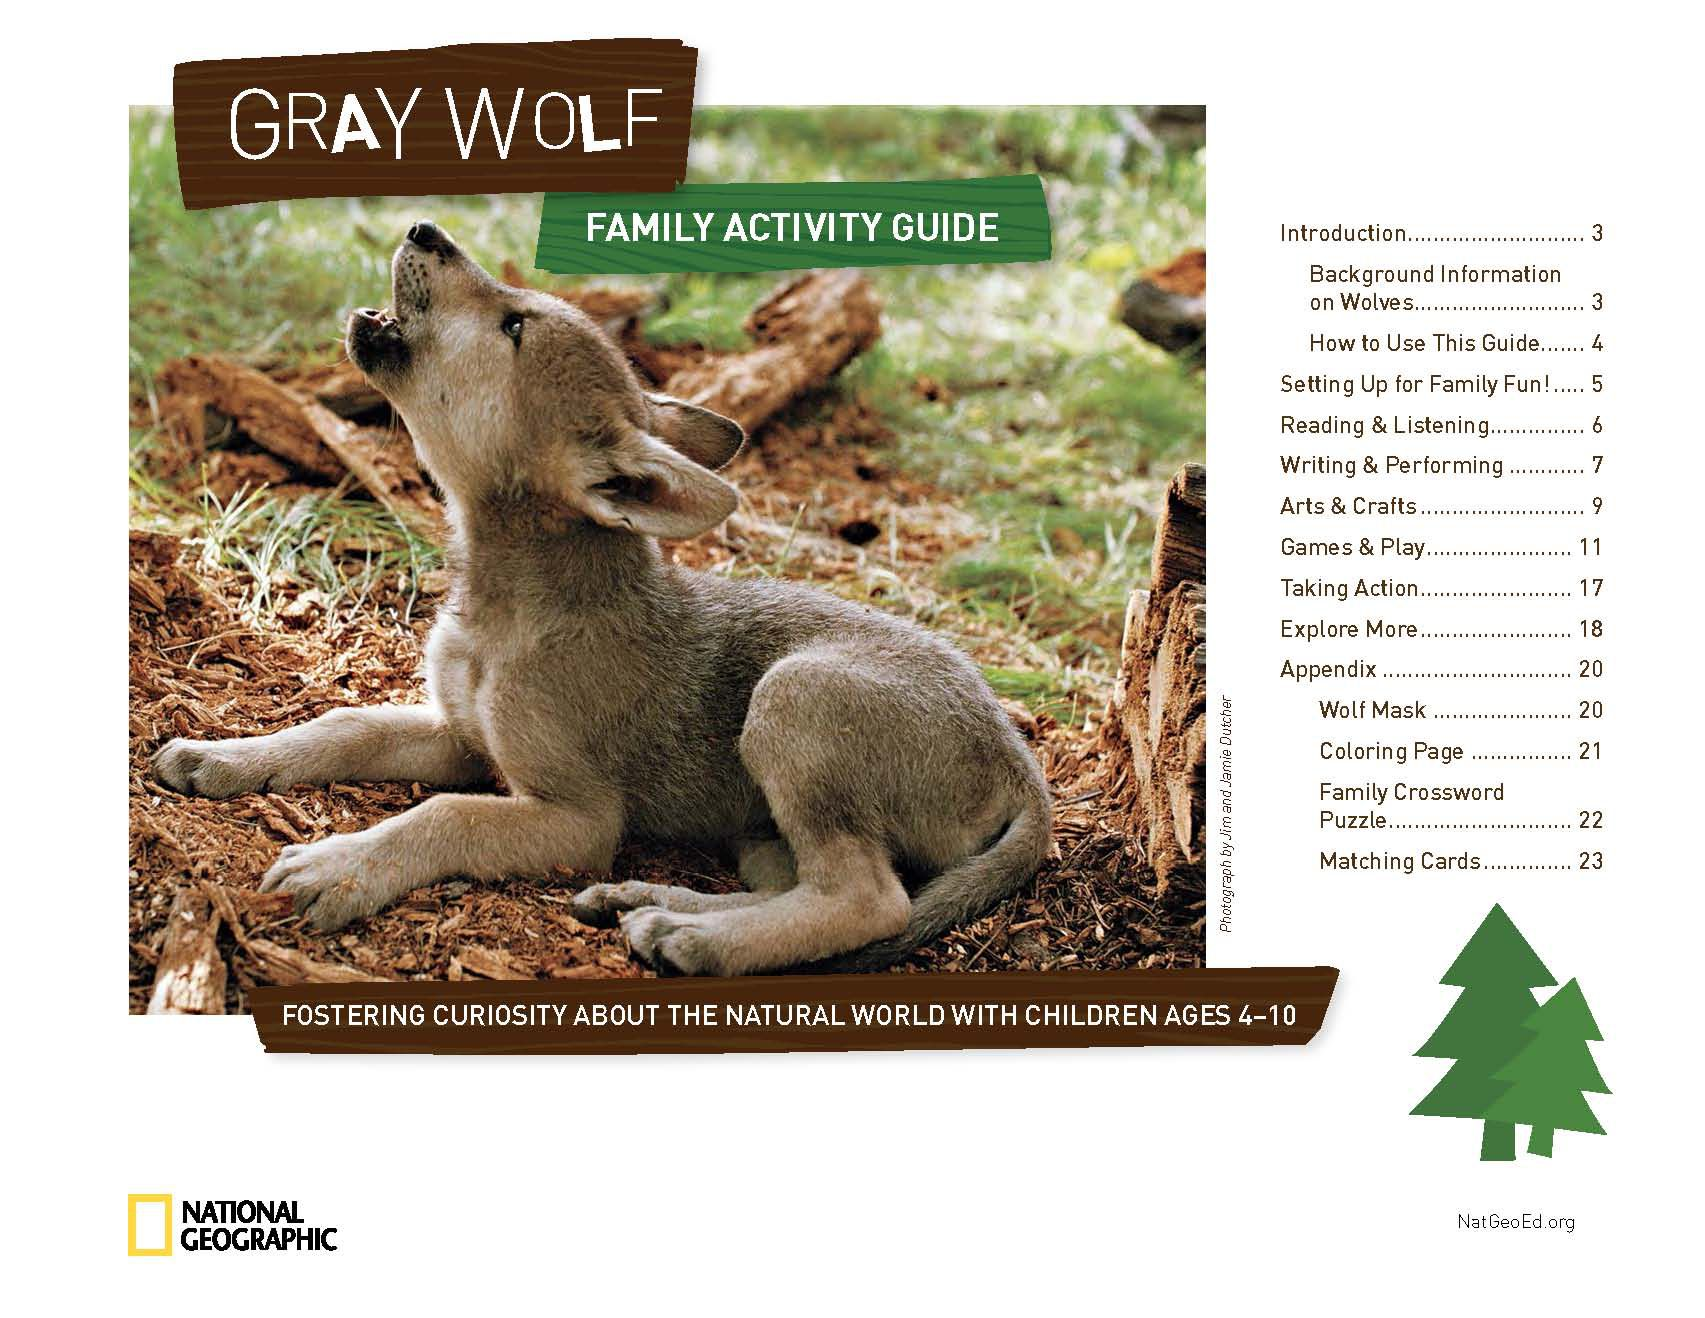 Gray Wolf Family Activity Guide